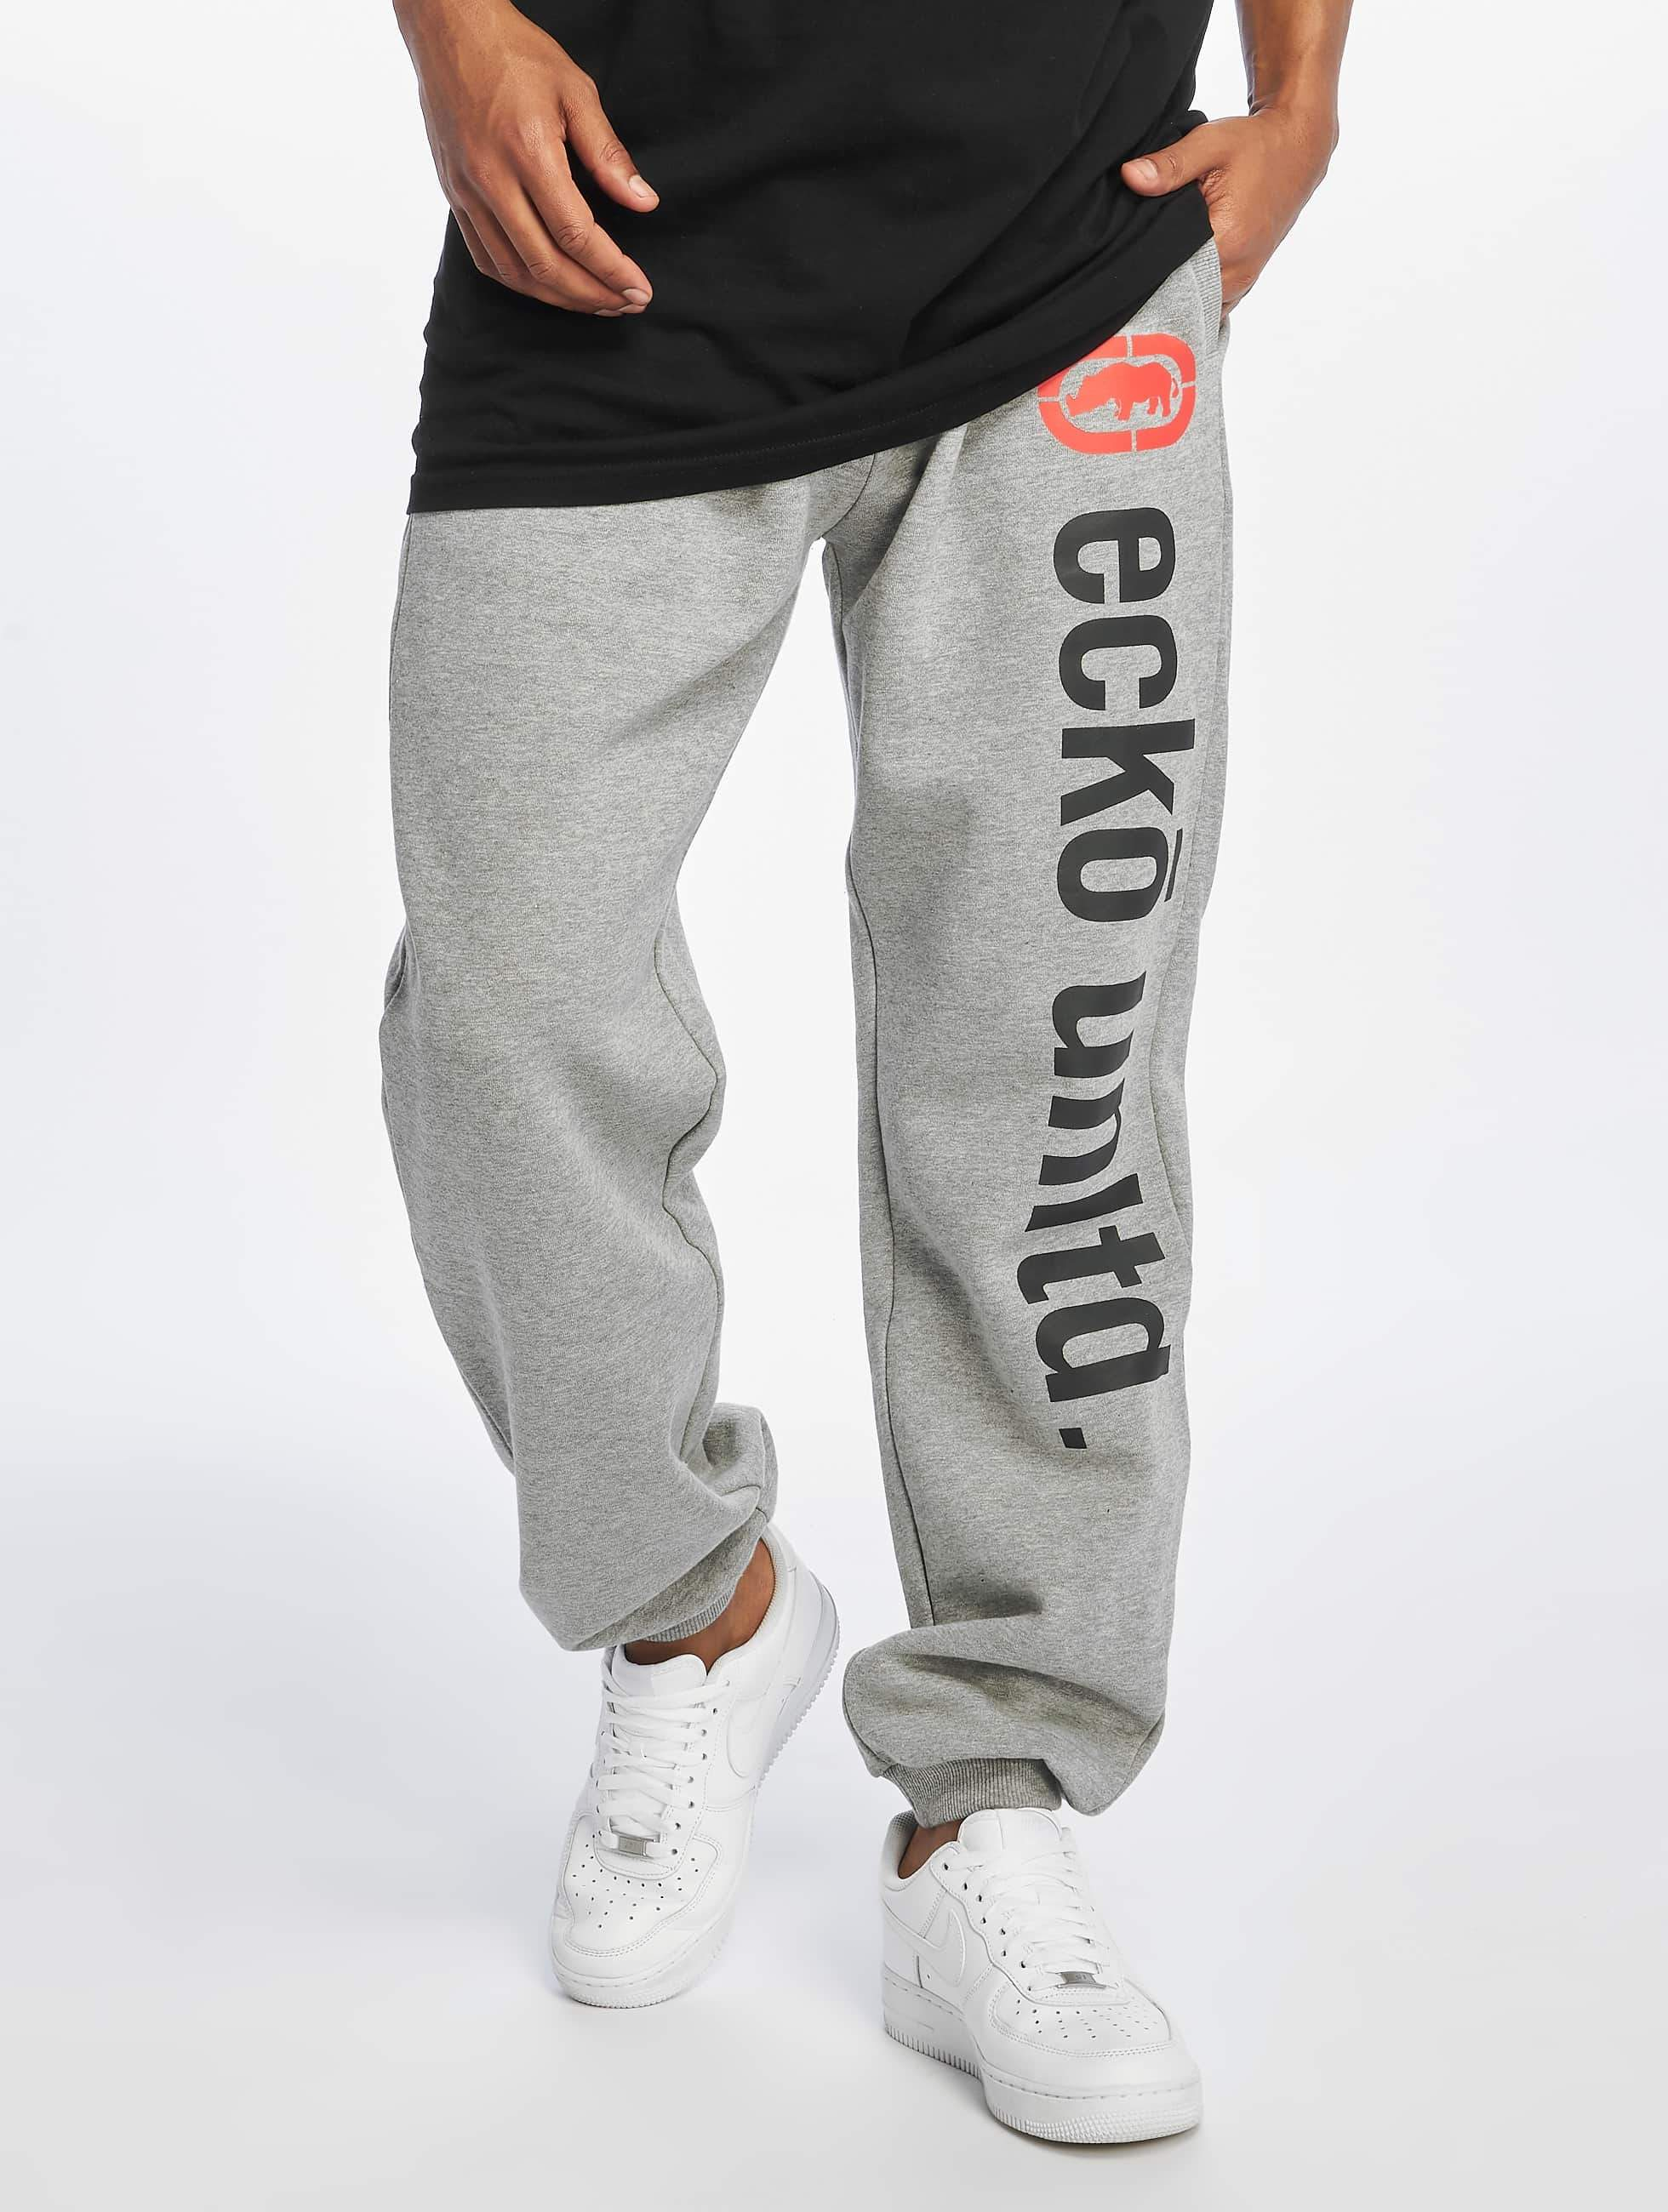 Ecko Unltd. / Sweat Pant 2Face in grey L